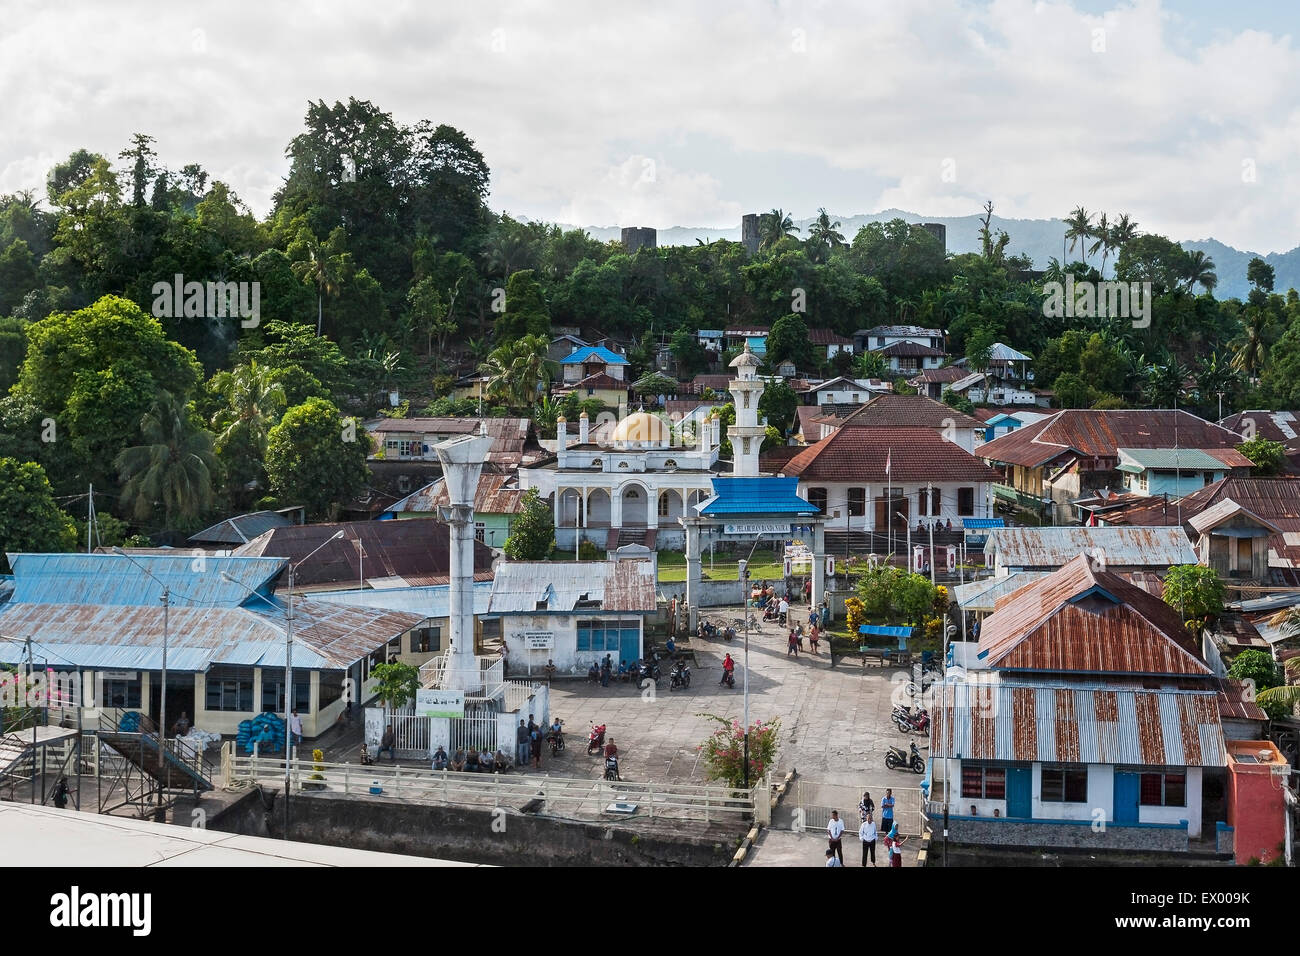 Bandaneira with mosque and Fort Belgica, Banda, Maluku, Indonesia Stock Photo